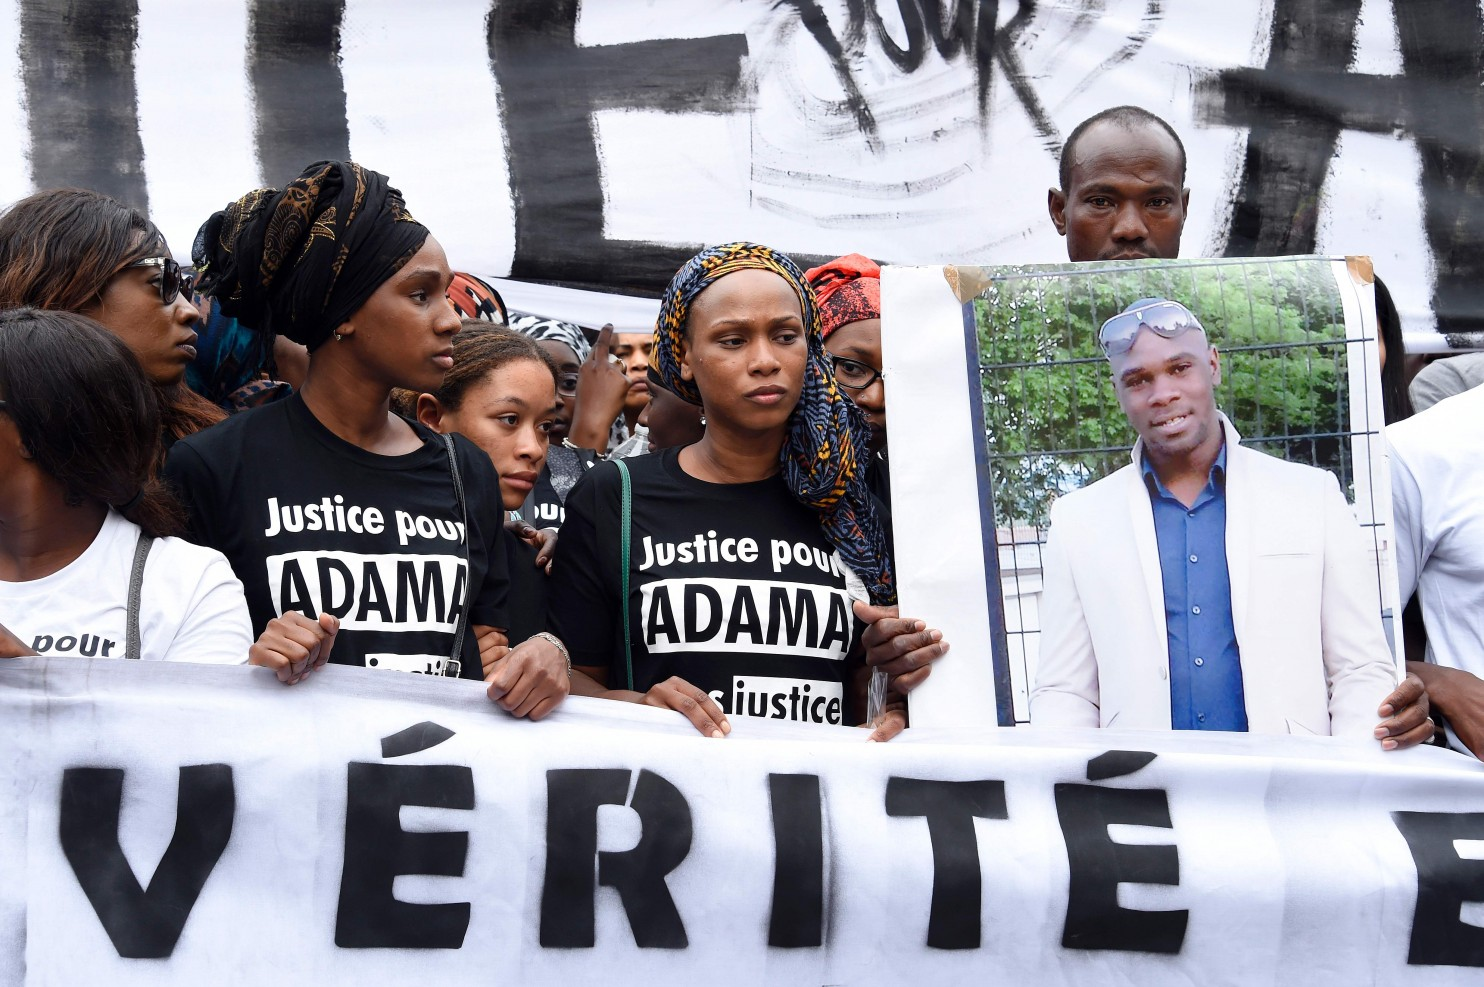 Black Lives Matter movement comes to France. But will it translate?